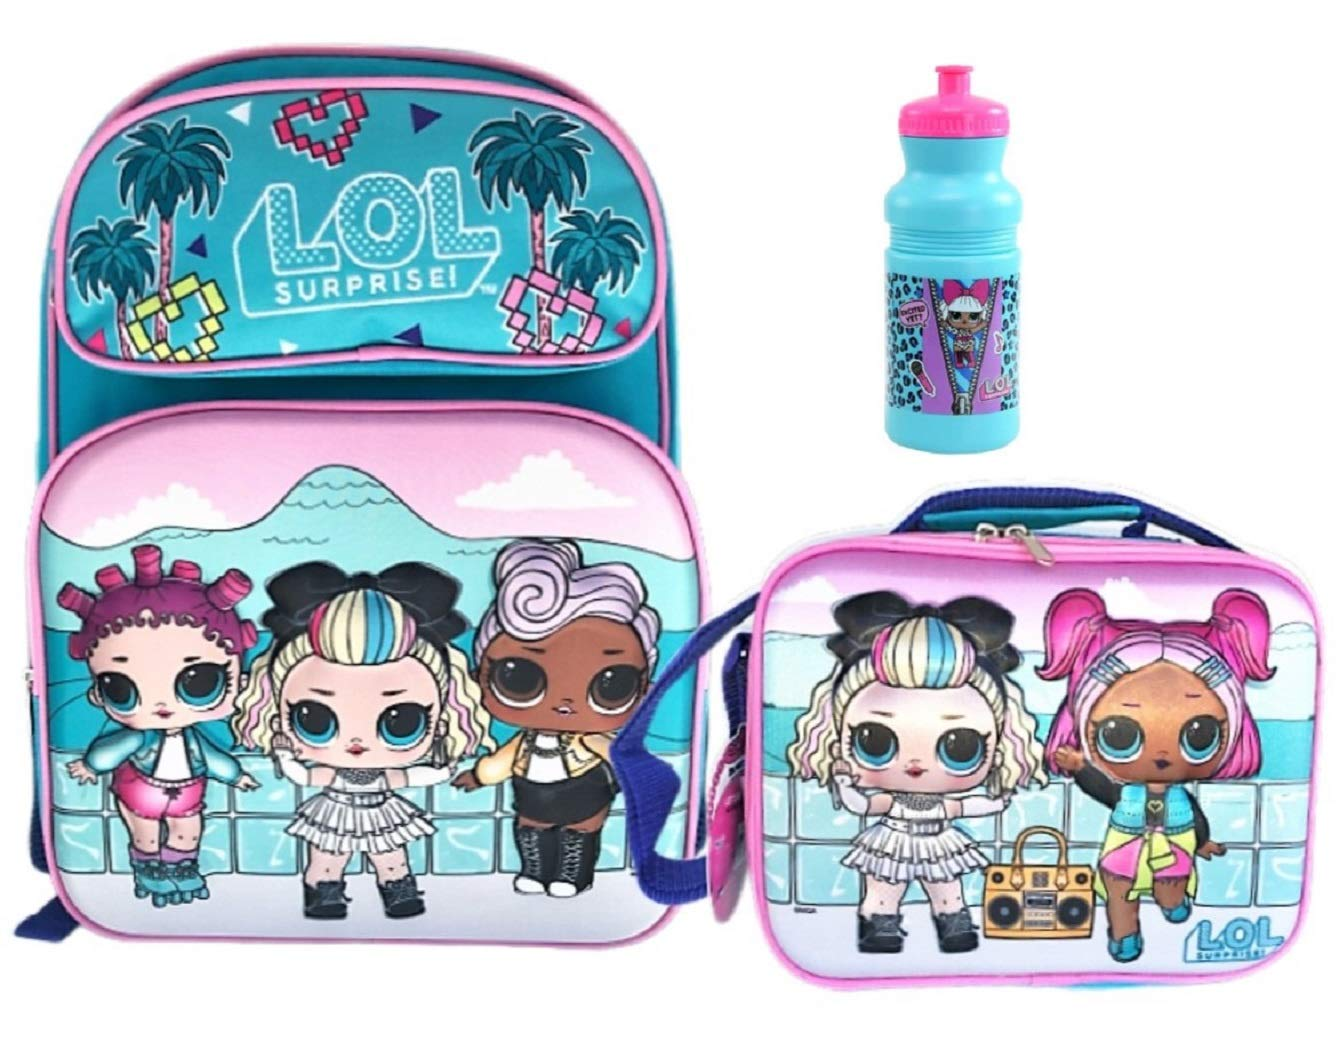 L.O.L. Surprise! Limited Edition Supreme BFF's 16 inch 3D Backpack with Insulated Lunch Tote and Water Bottle